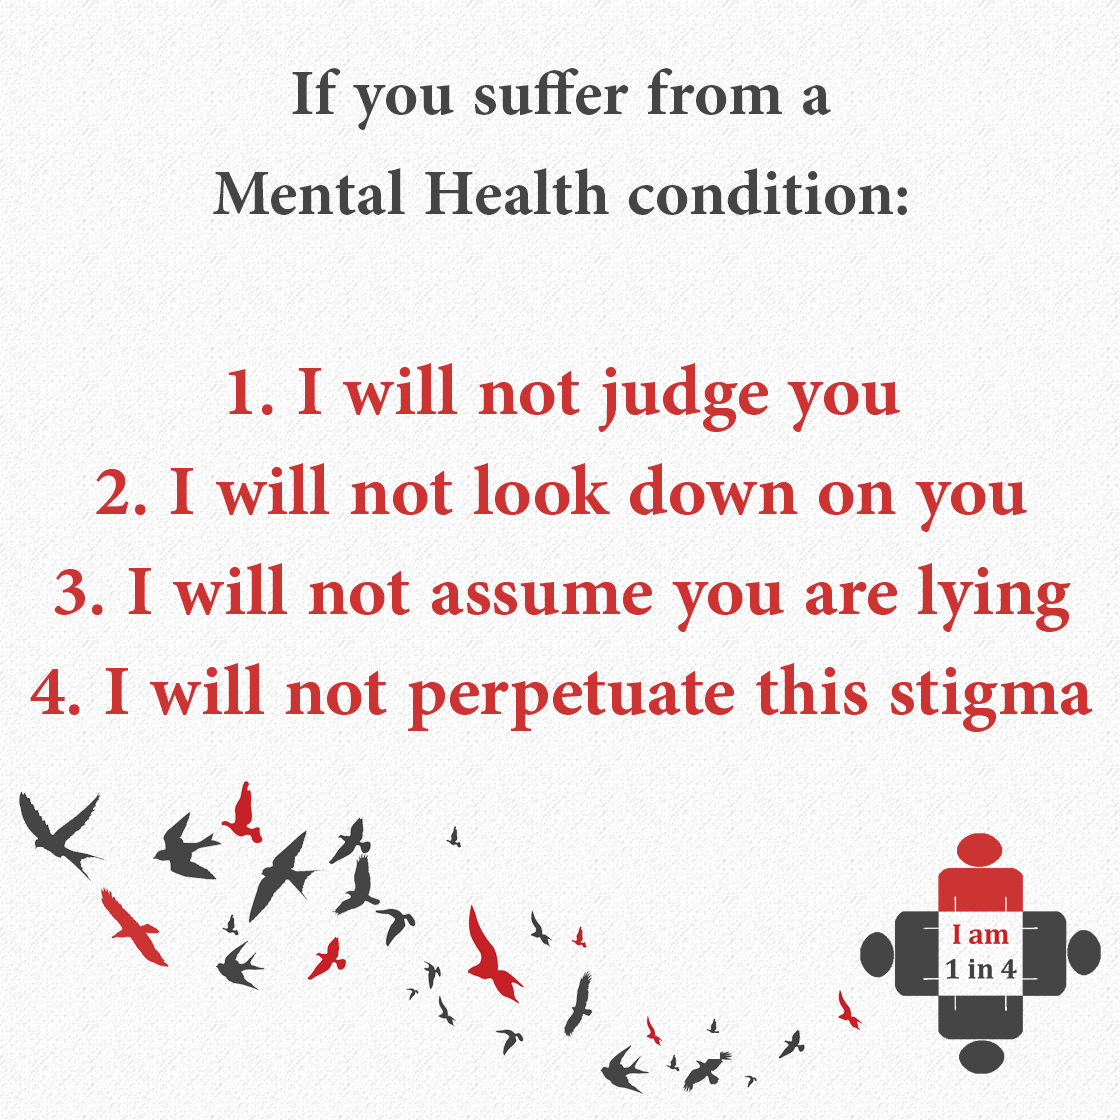 Mental Health Stigma? Let's do NOTHING